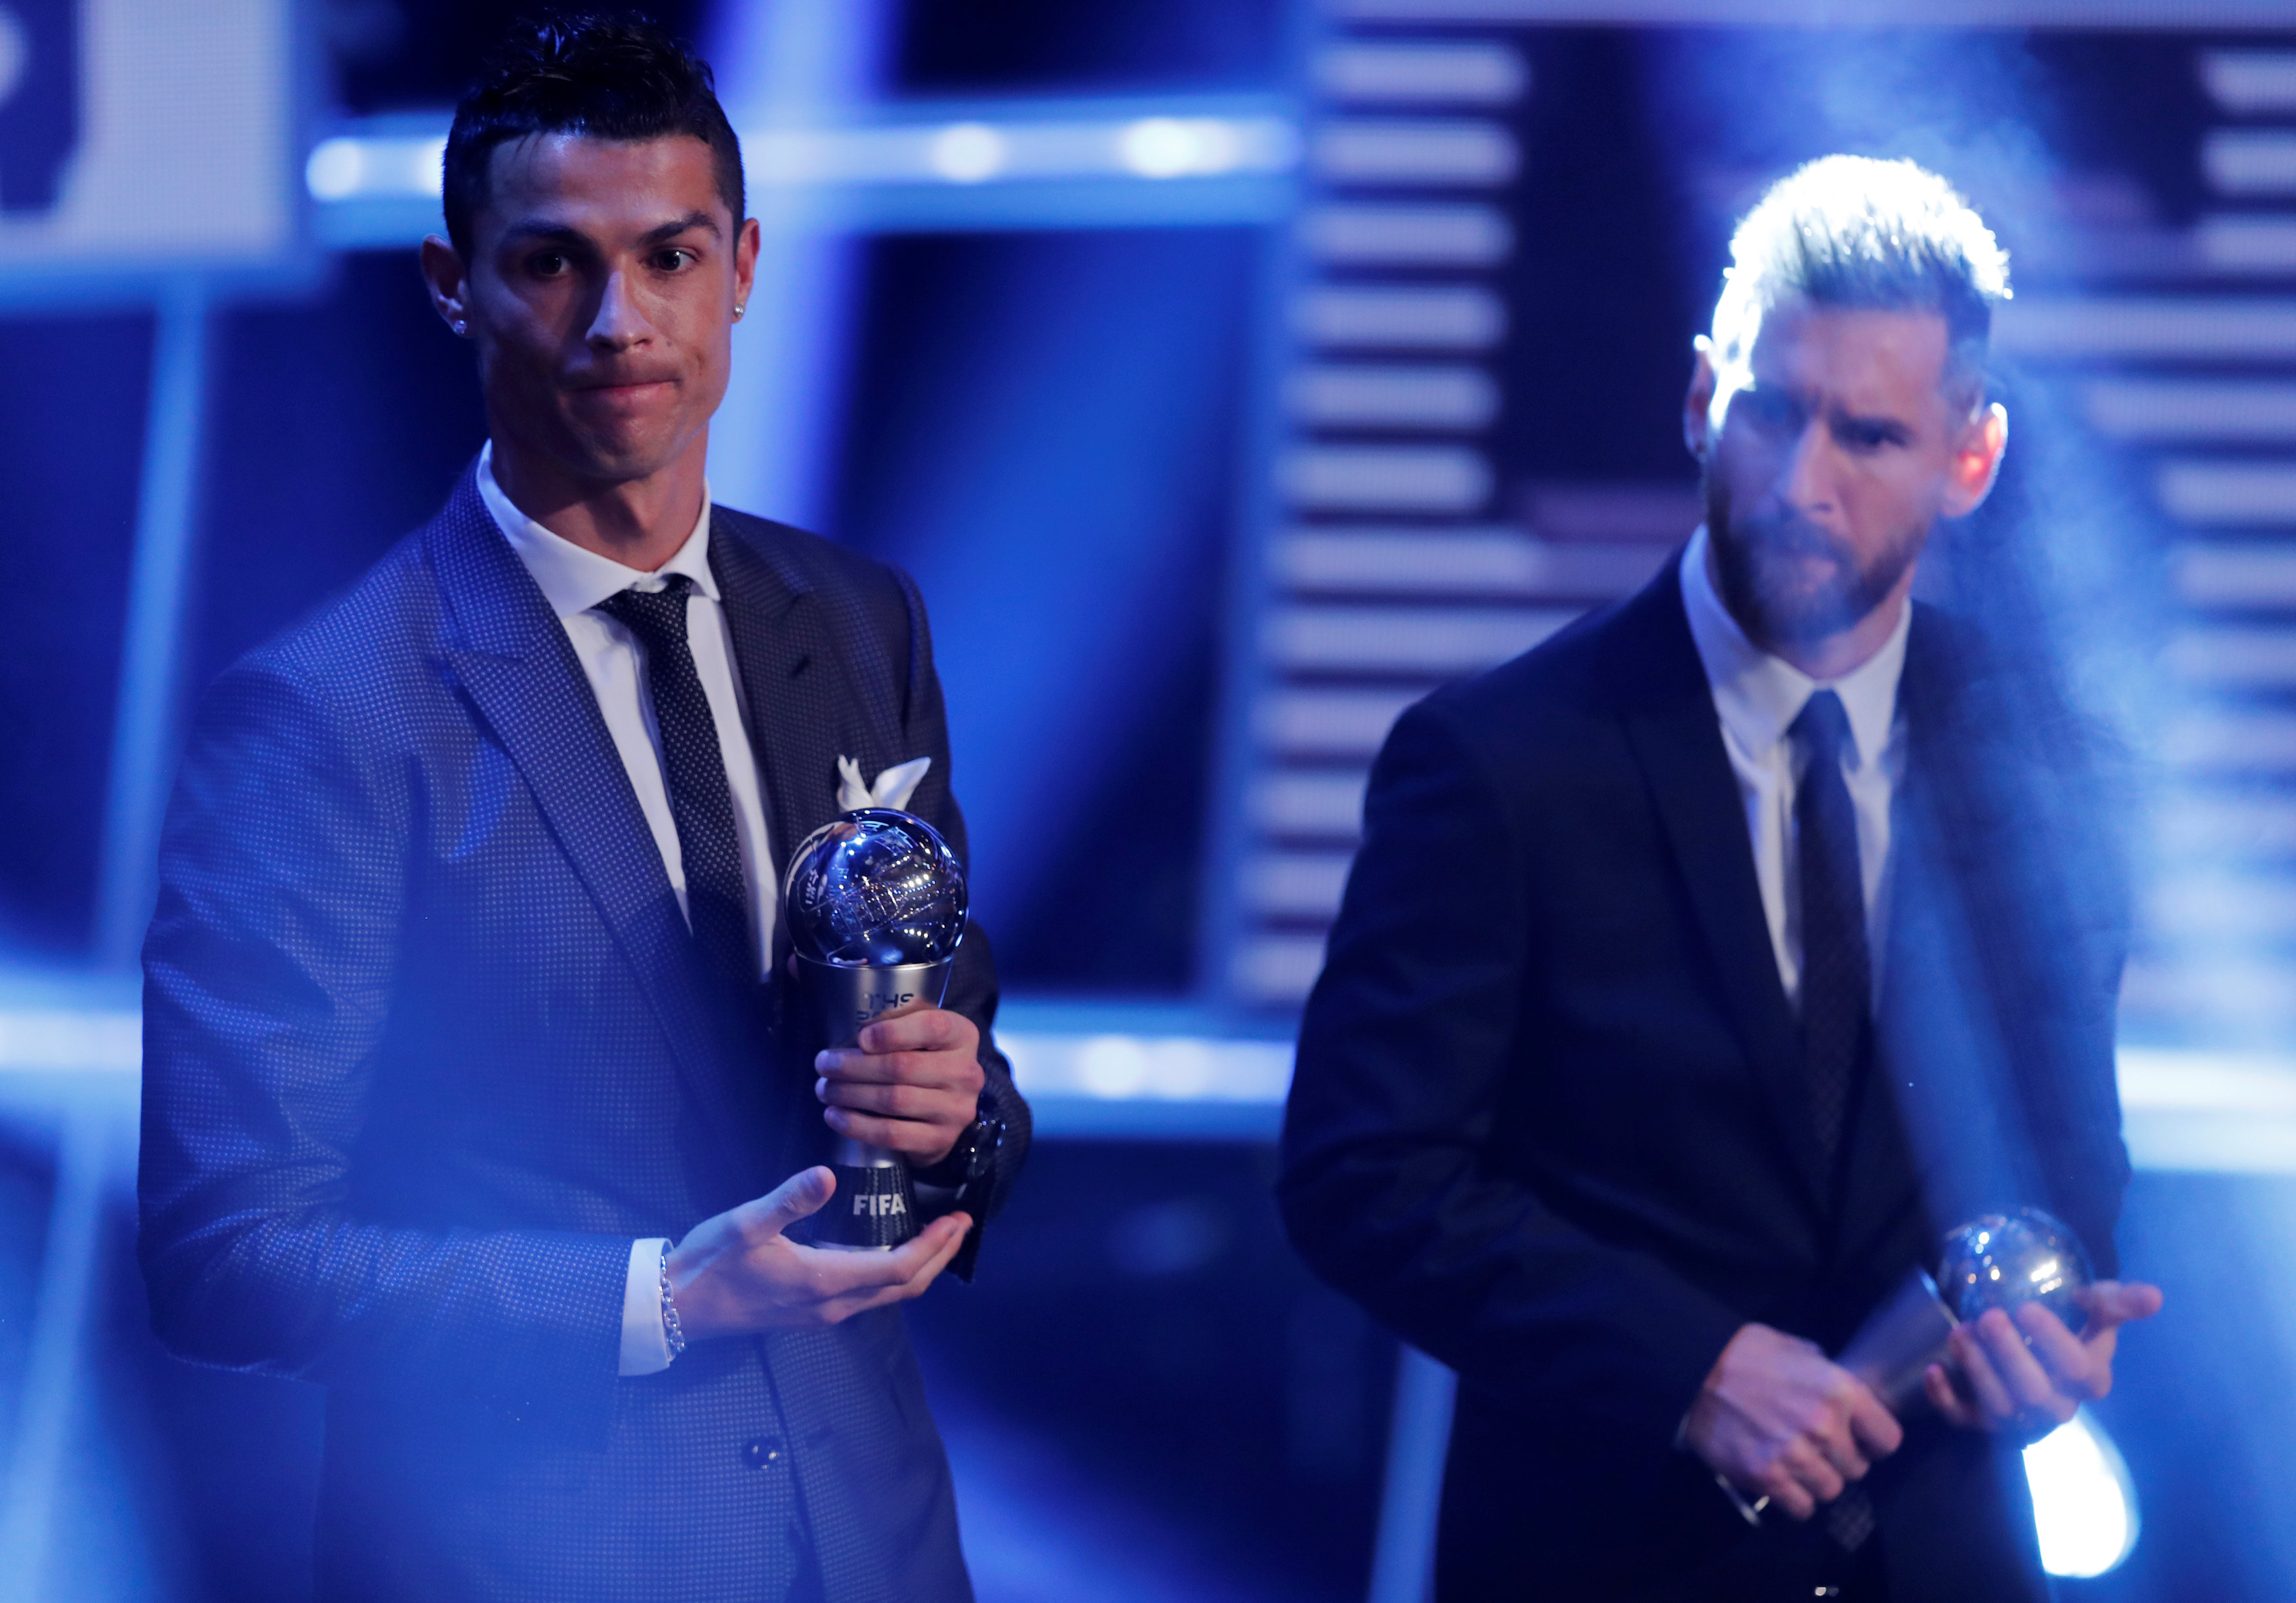 The Best FIFA Football Award